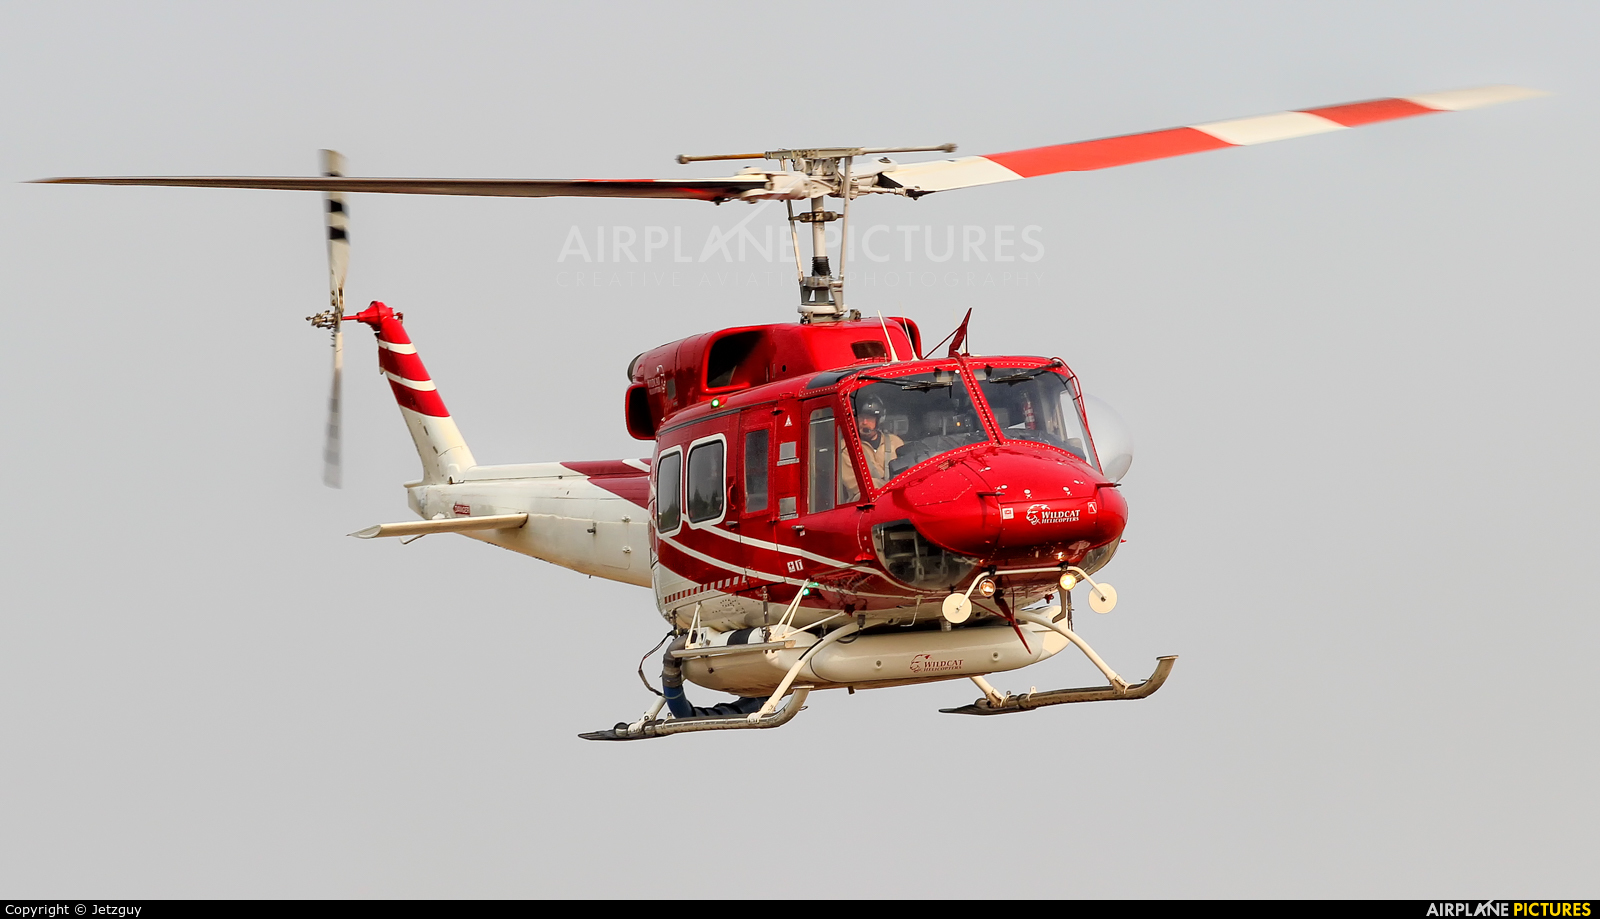 Wildcat Helicopters C-FCAN aircraft at 108 Mile Ranch, BC